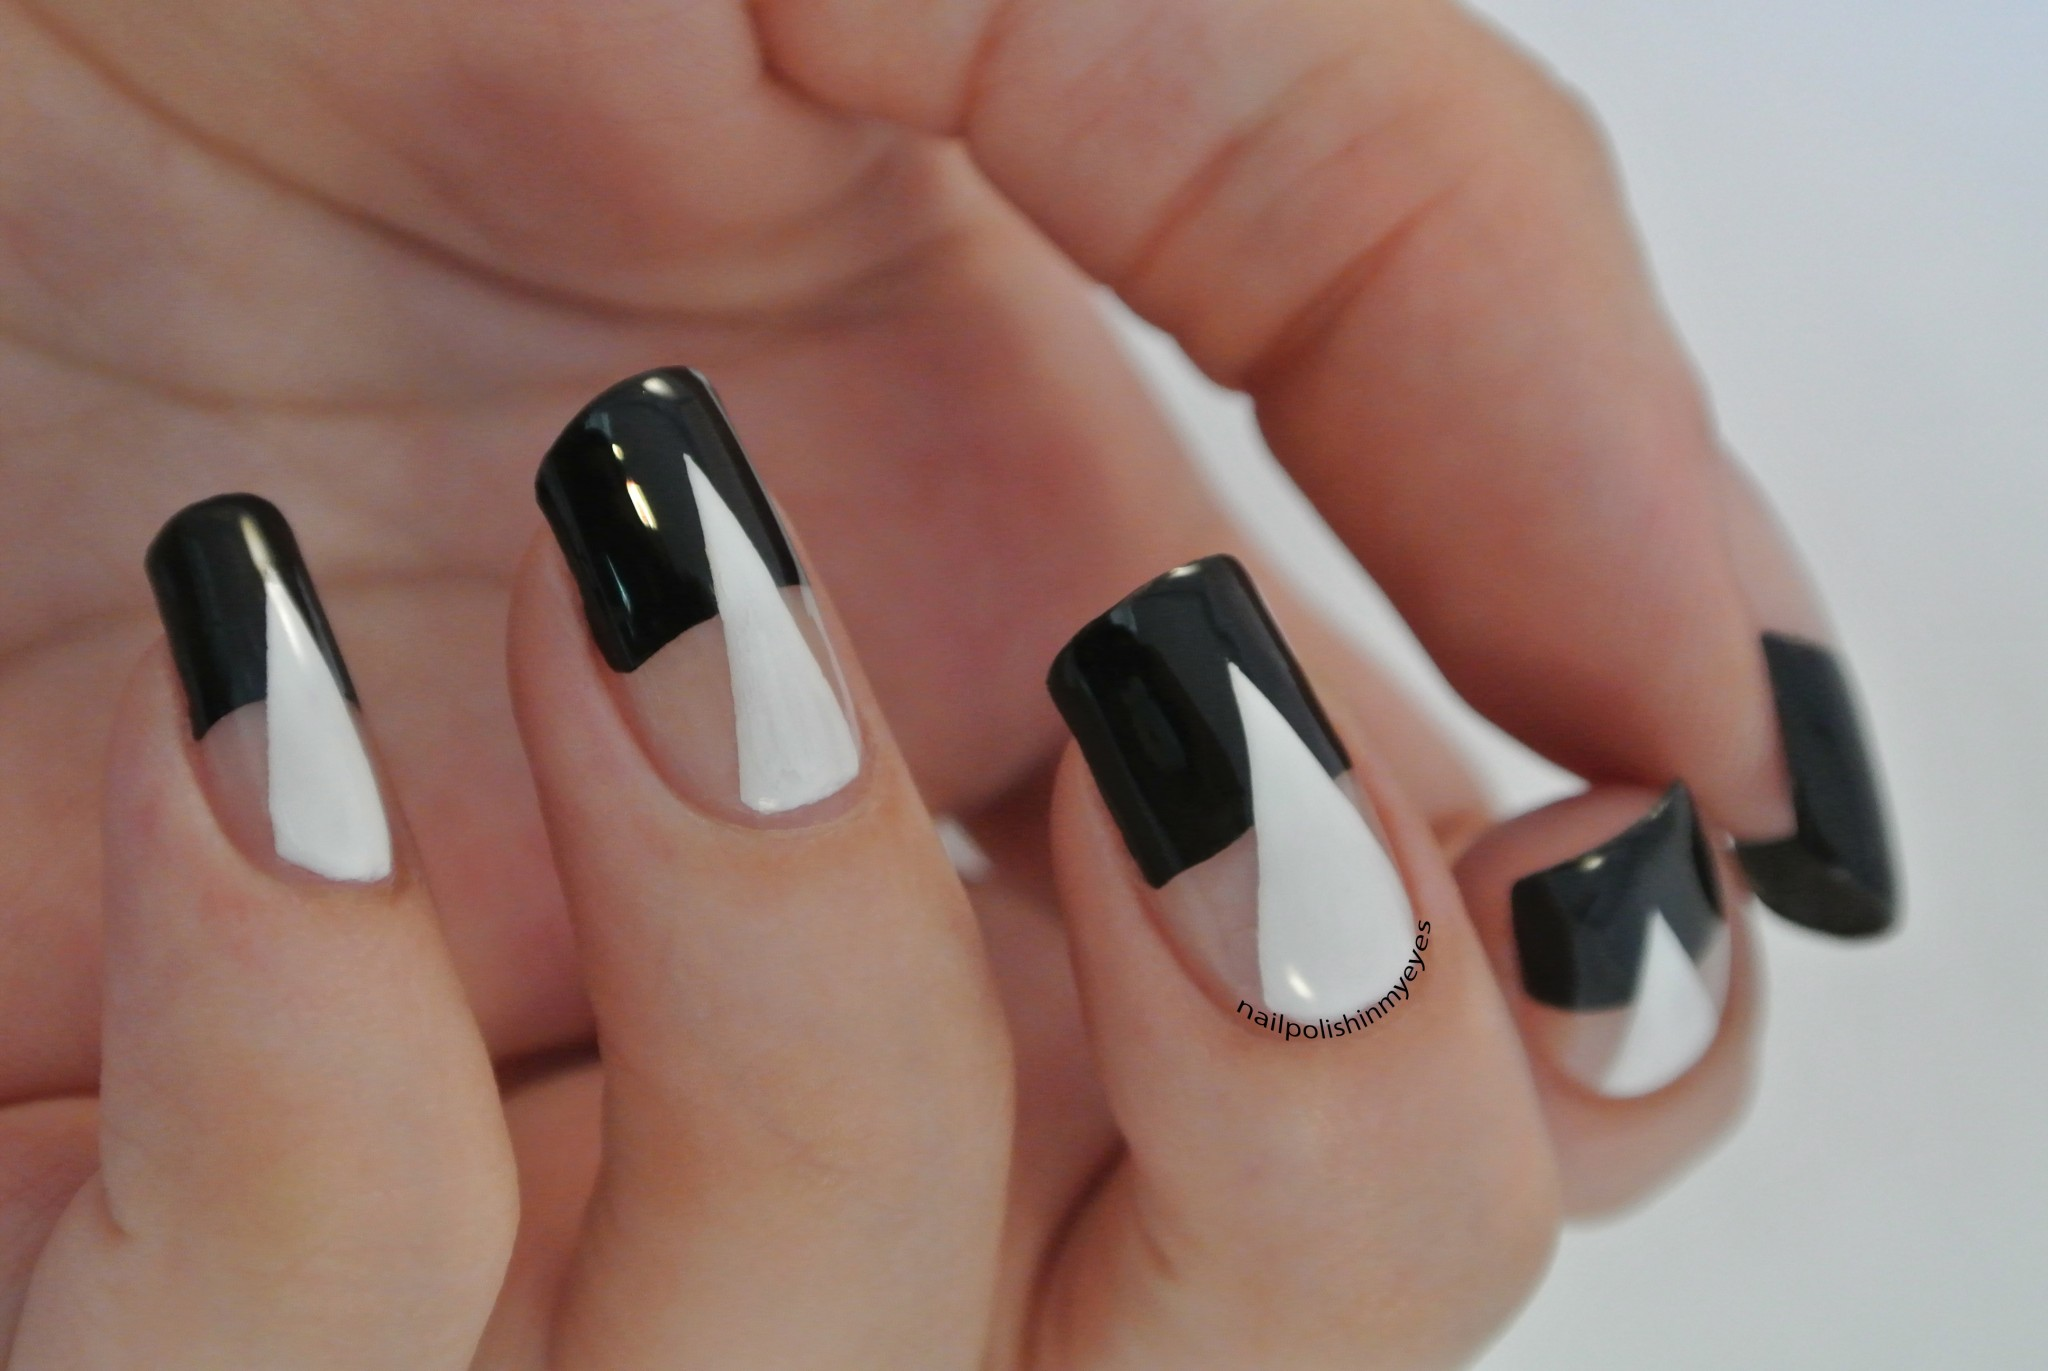 Top 45 Acrylic Nails Perfect for Every Occasion - Nails C